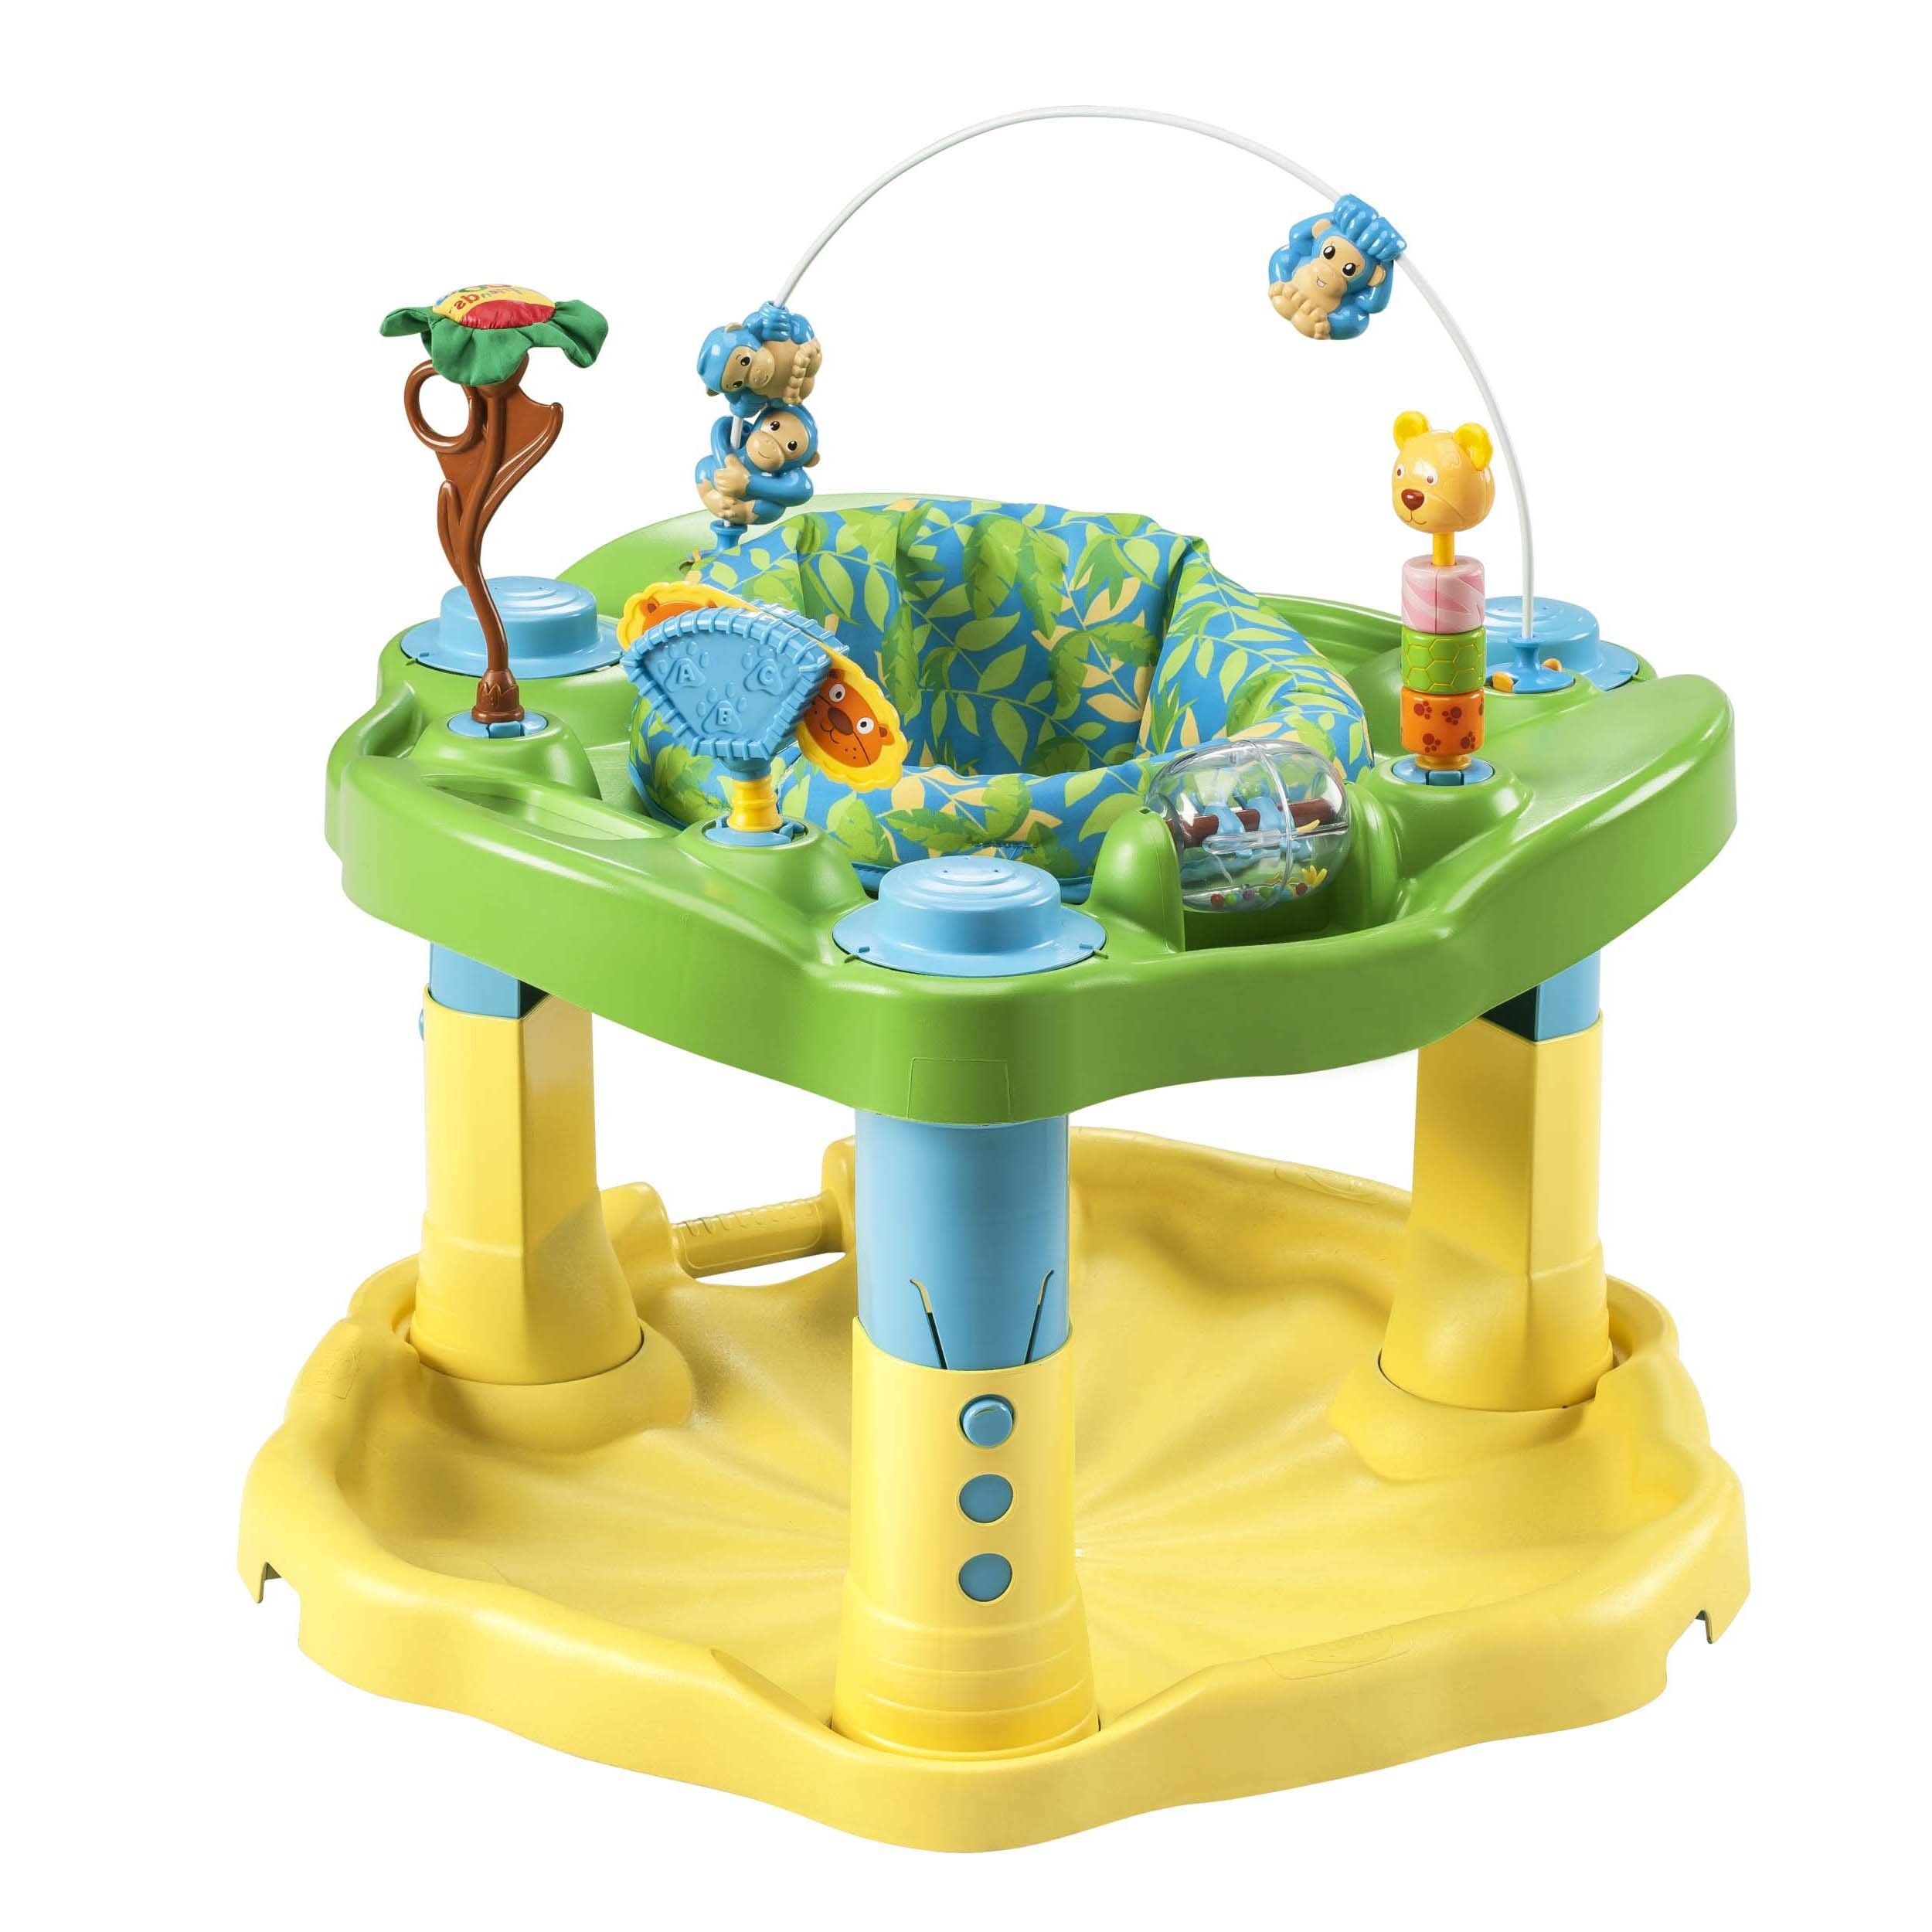 evenflo exersaucer jump & learn activity center manual